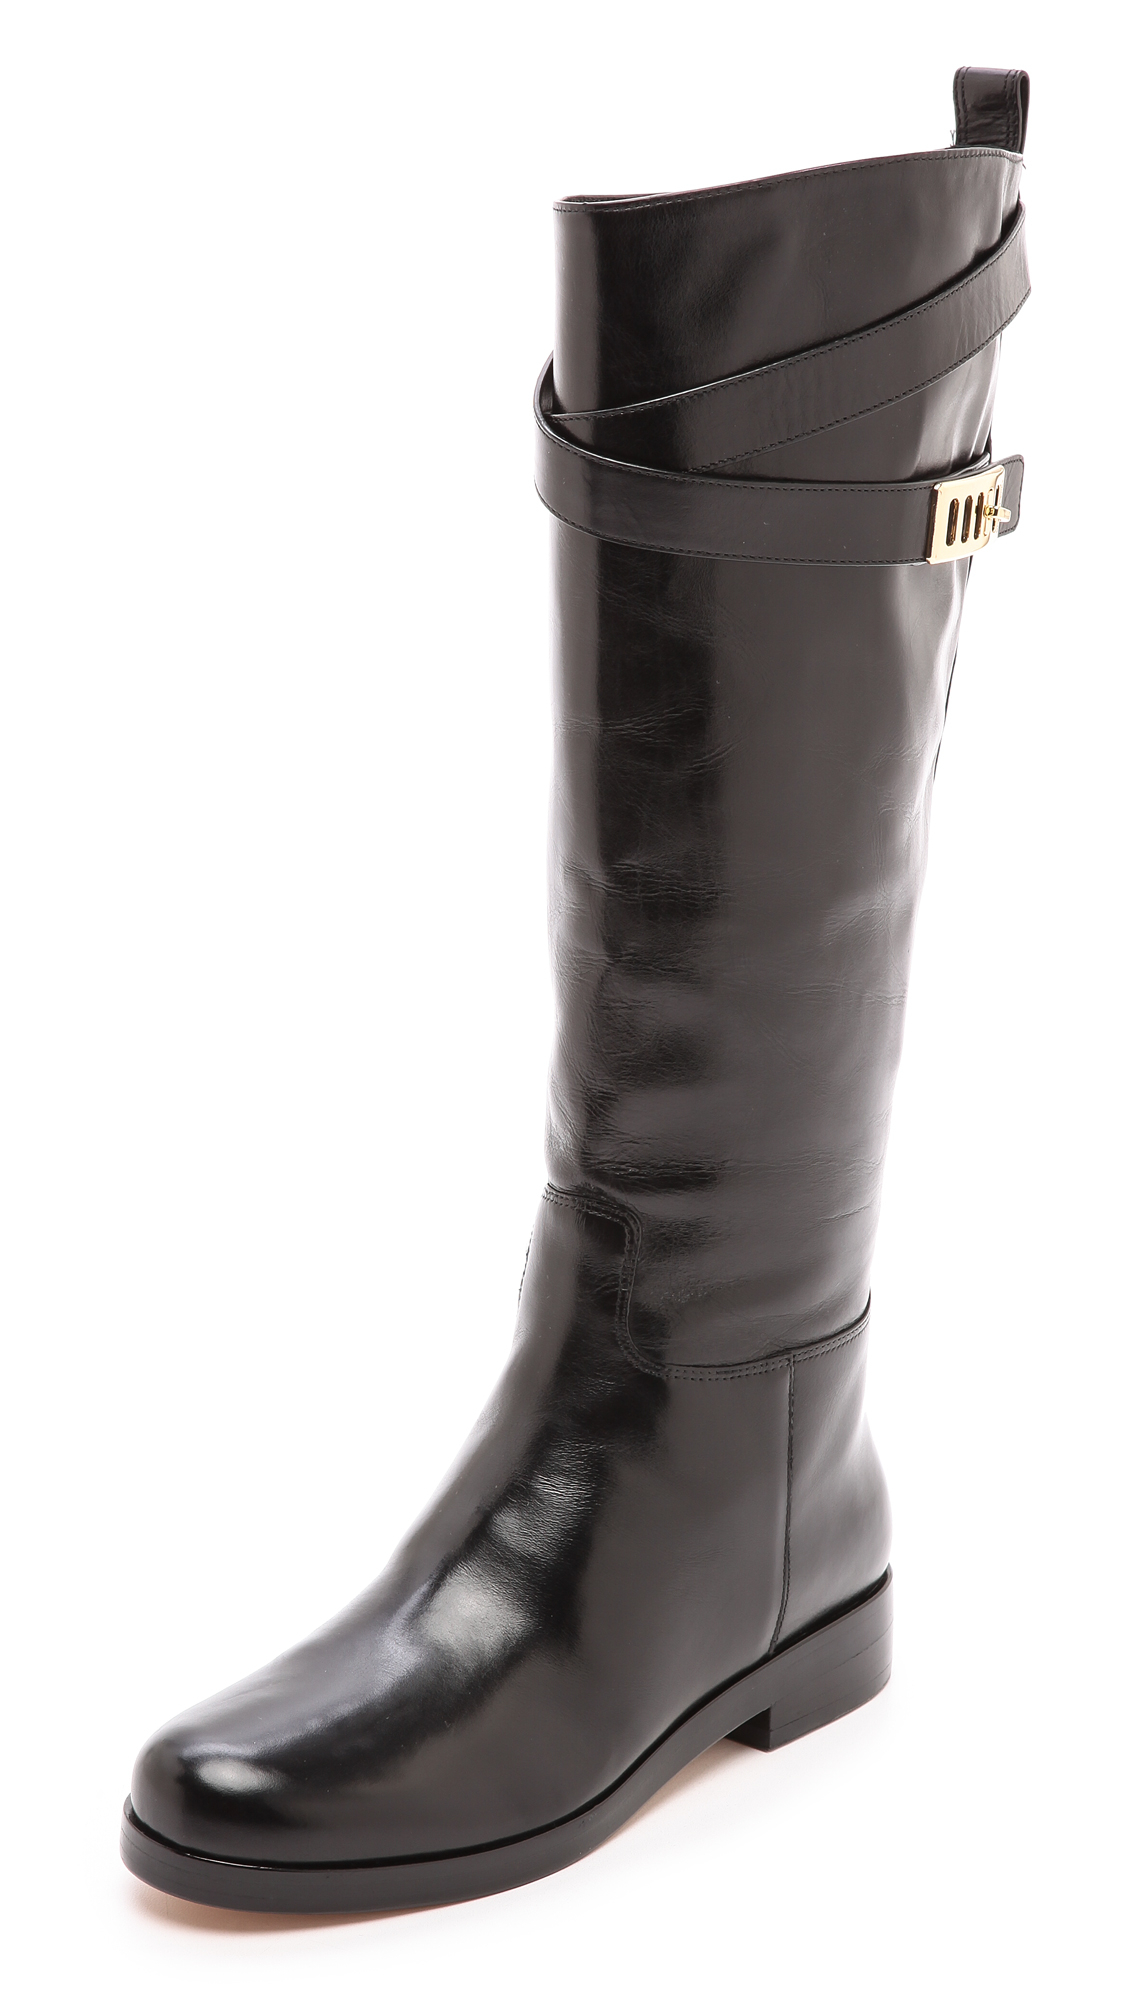 b7e206d579e7 Lyst - Michael Kors Brynlee Riding Boots - Black in Black